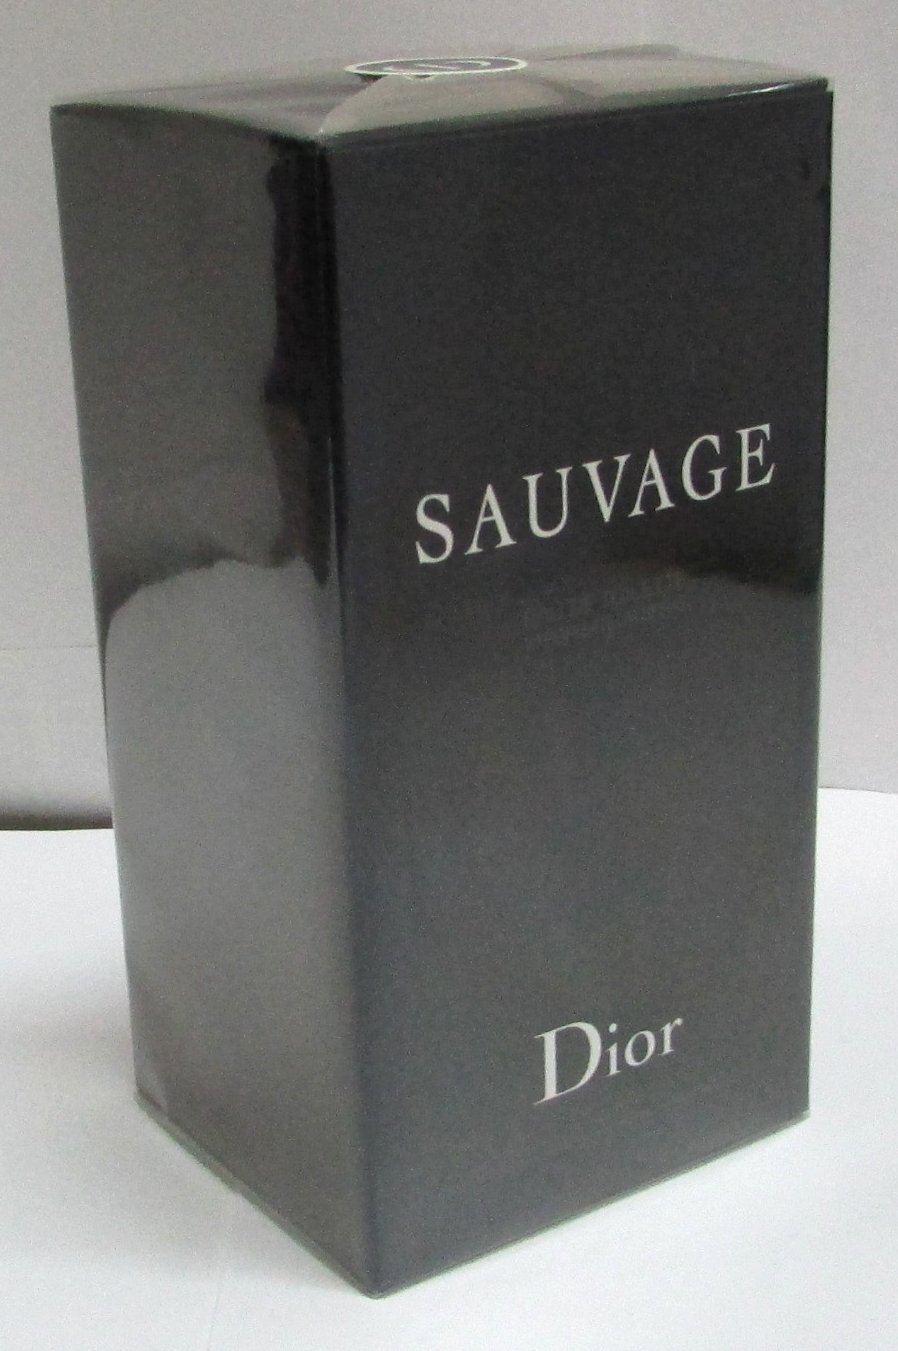 Christian Dior SAUVAGE EDT Eau de Toilette Spray 100ml 3.4oz Men NEW IN SEALED BOX & 100% Original